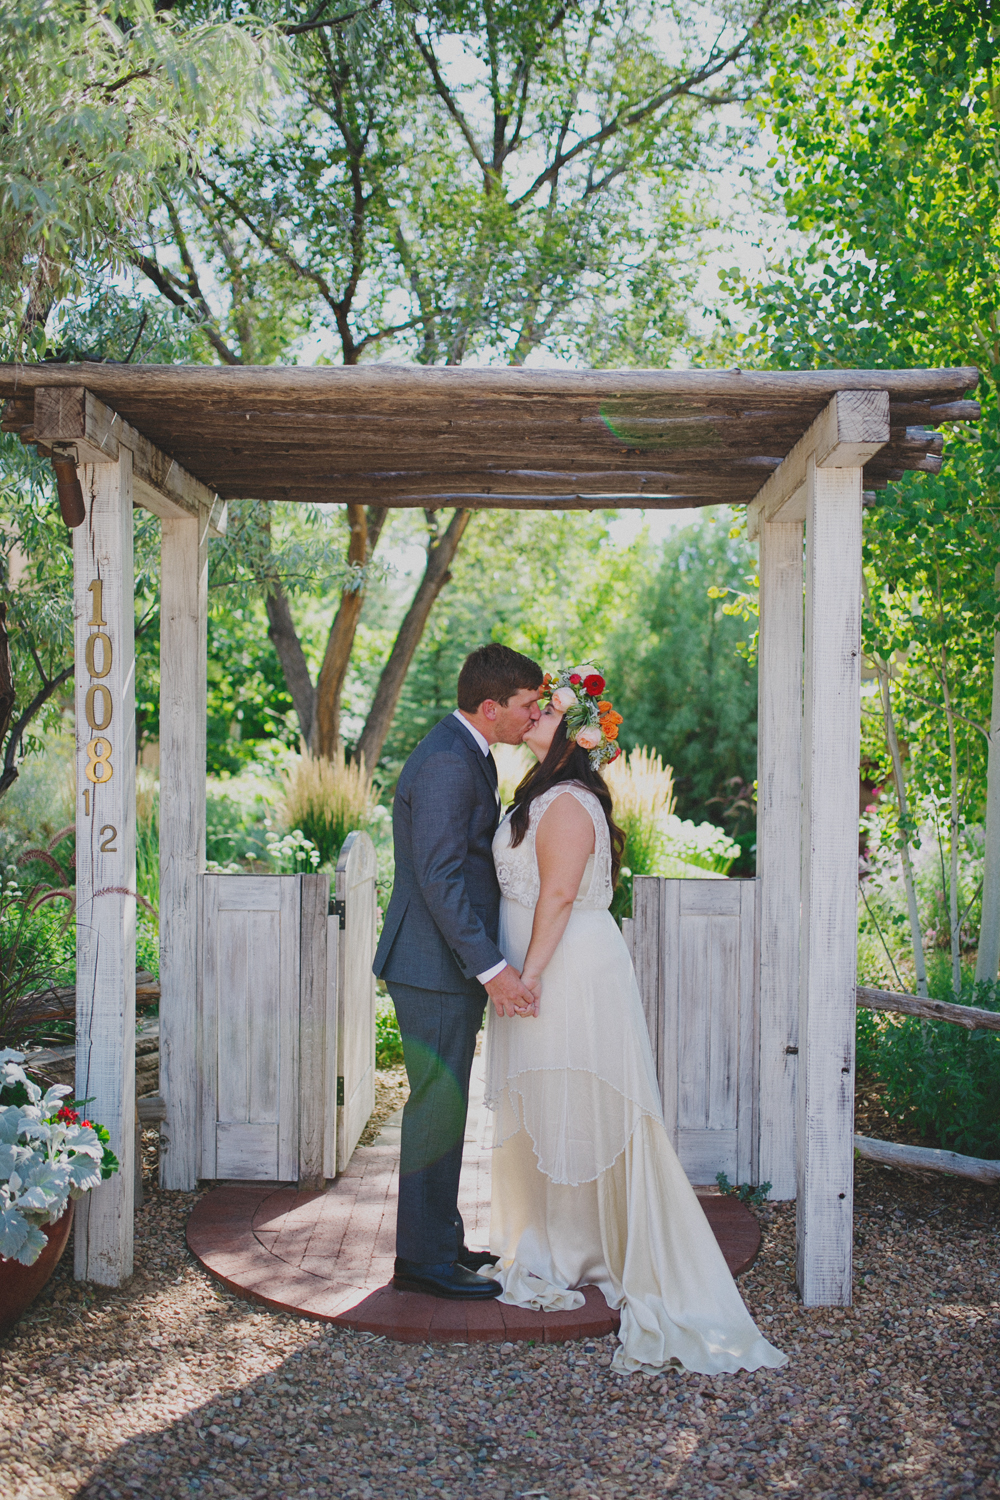 Nic + Taylor | La Posada | Santa Fe, New Mexico Wedding | Liz Anne Photography 032.jpg